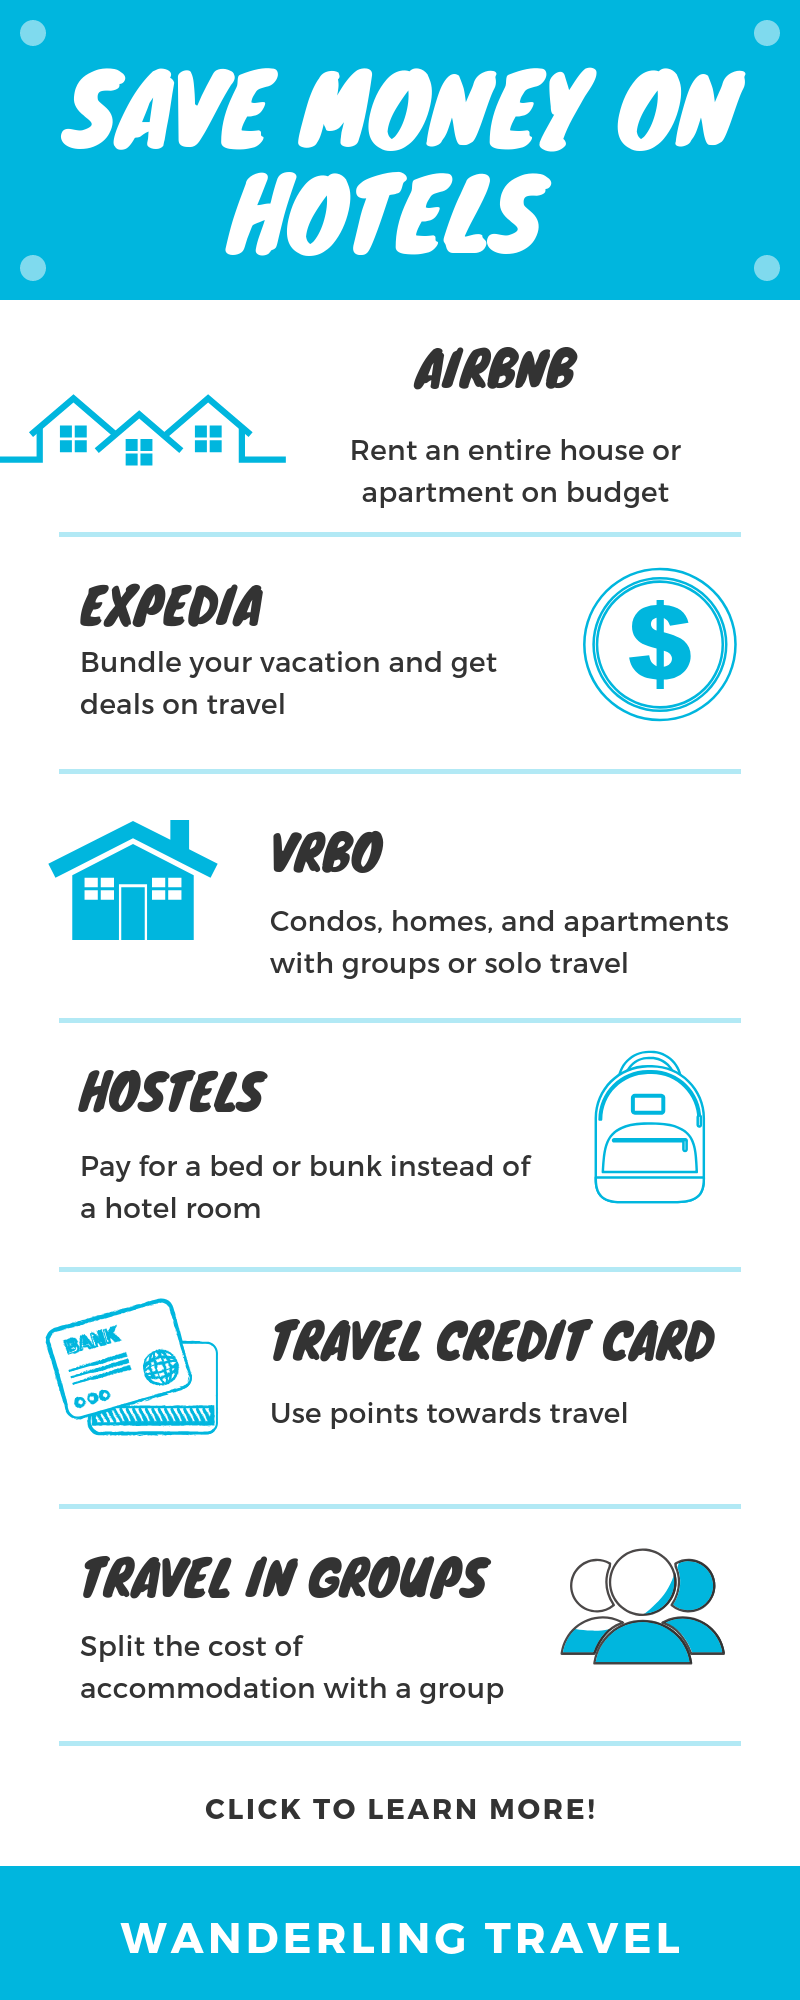 5 Ways To Save On Hotels With Images Budget Travel Tips